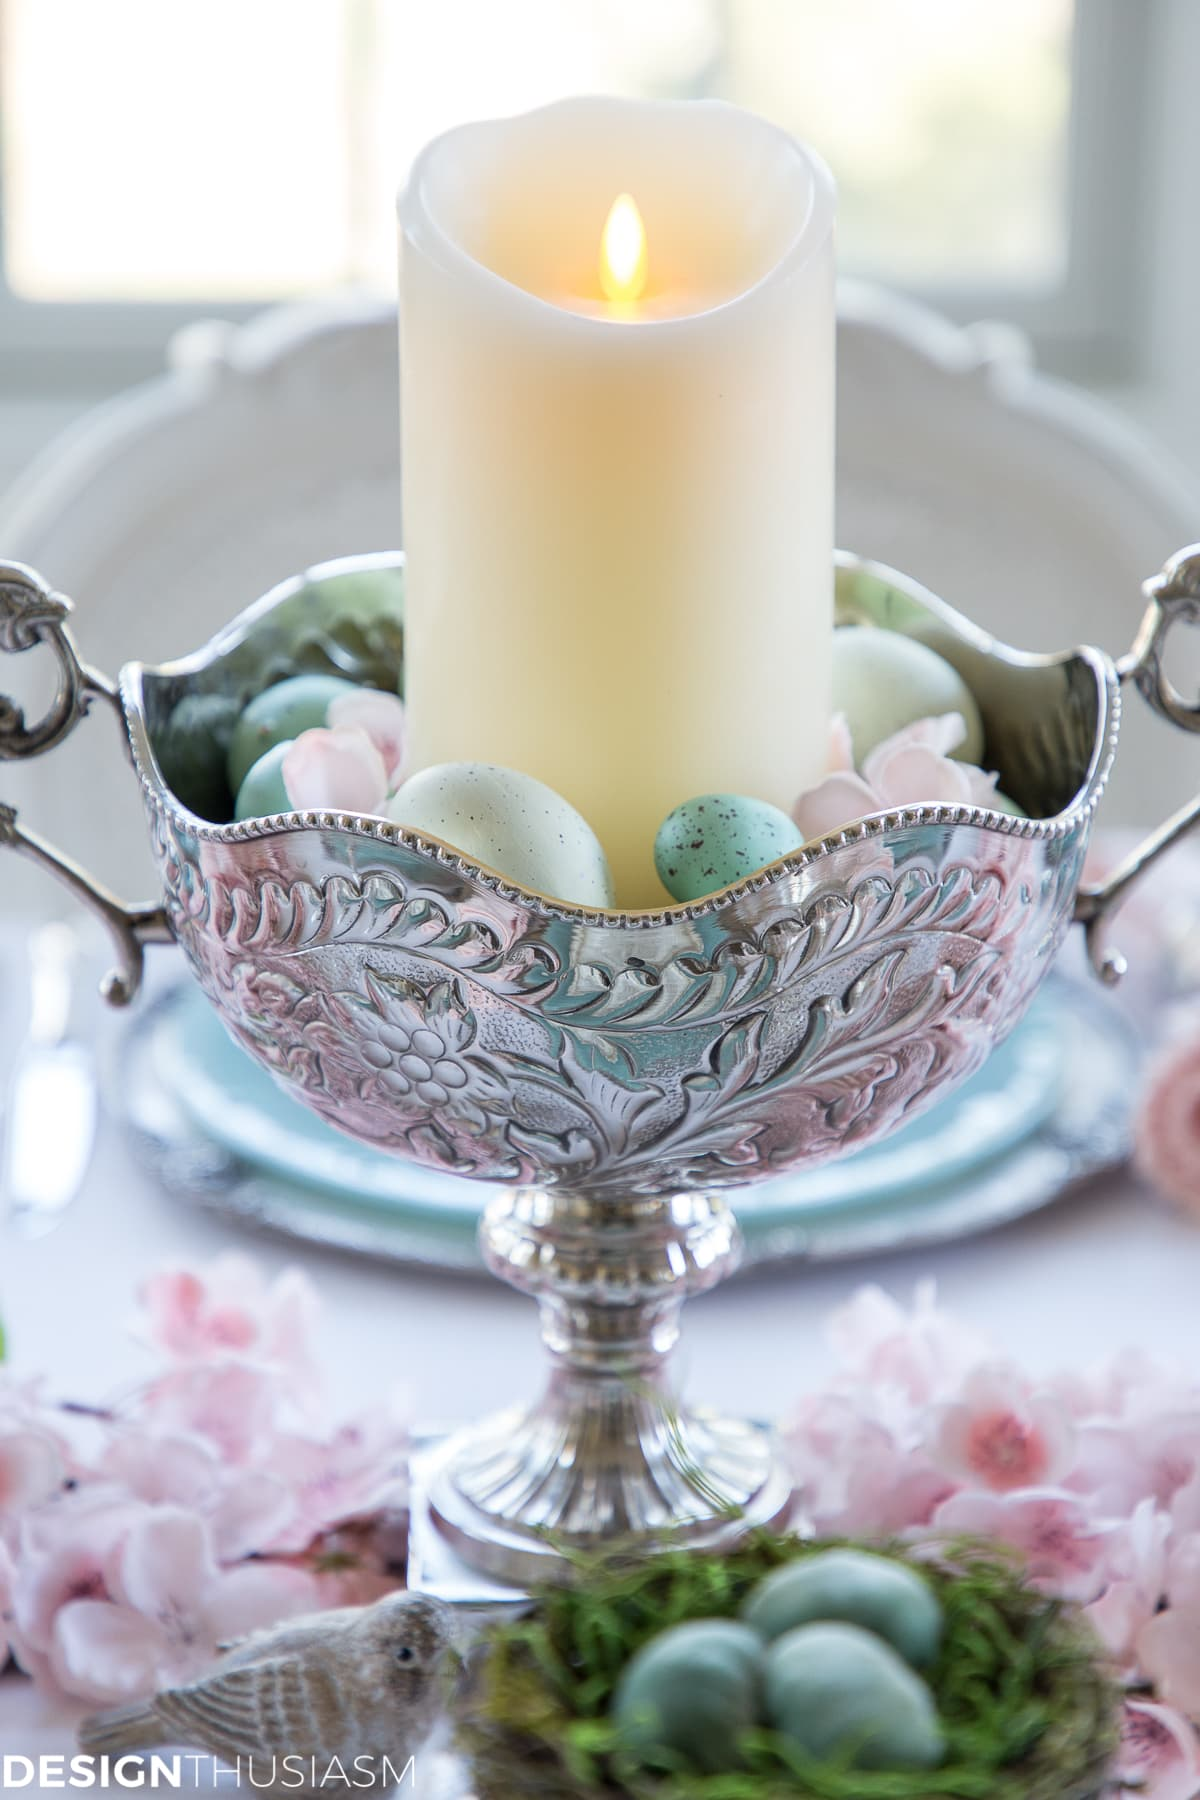 Easter centerpiece in a spring tablescape with eggs and cherry blossoms